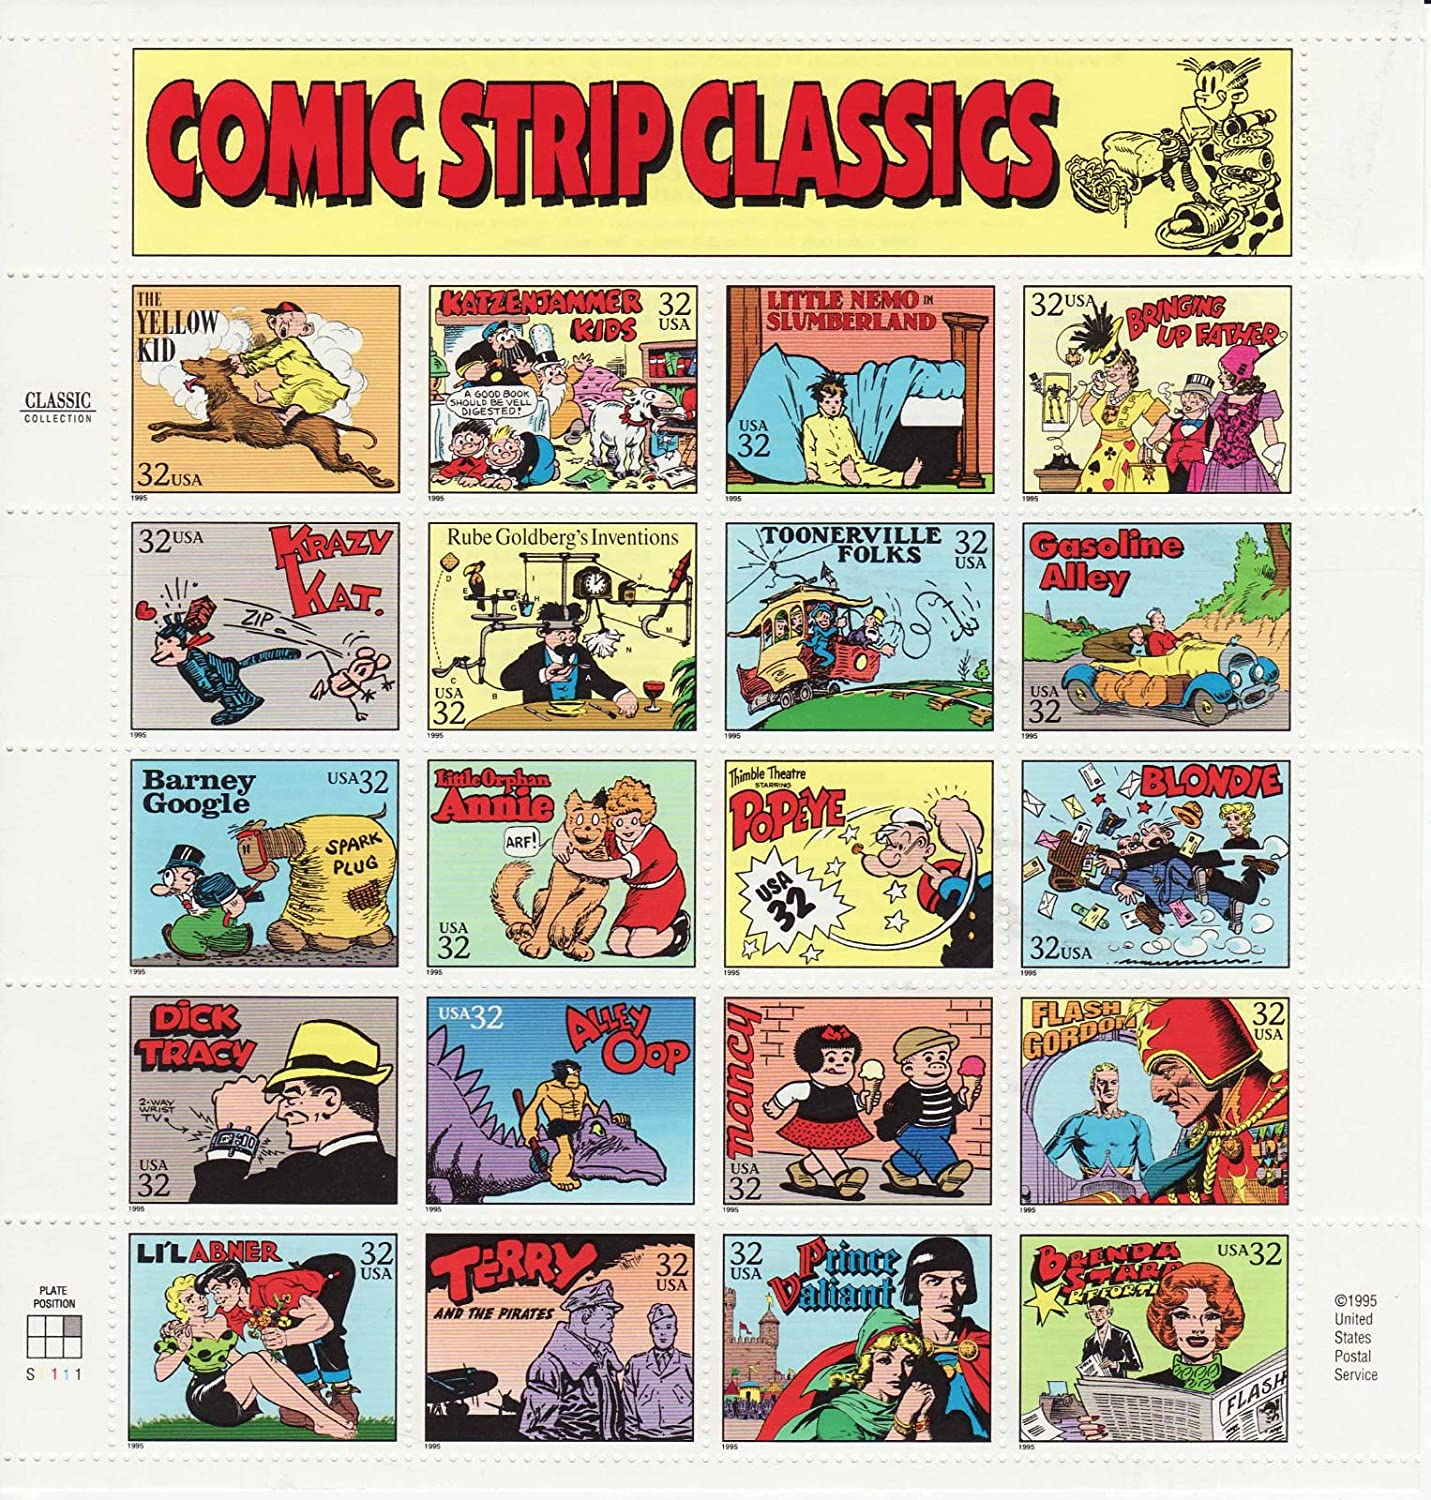 USPS Comic Strip Classics Collectible Stamp Sheet of 20 32 Stamps Scott 3000